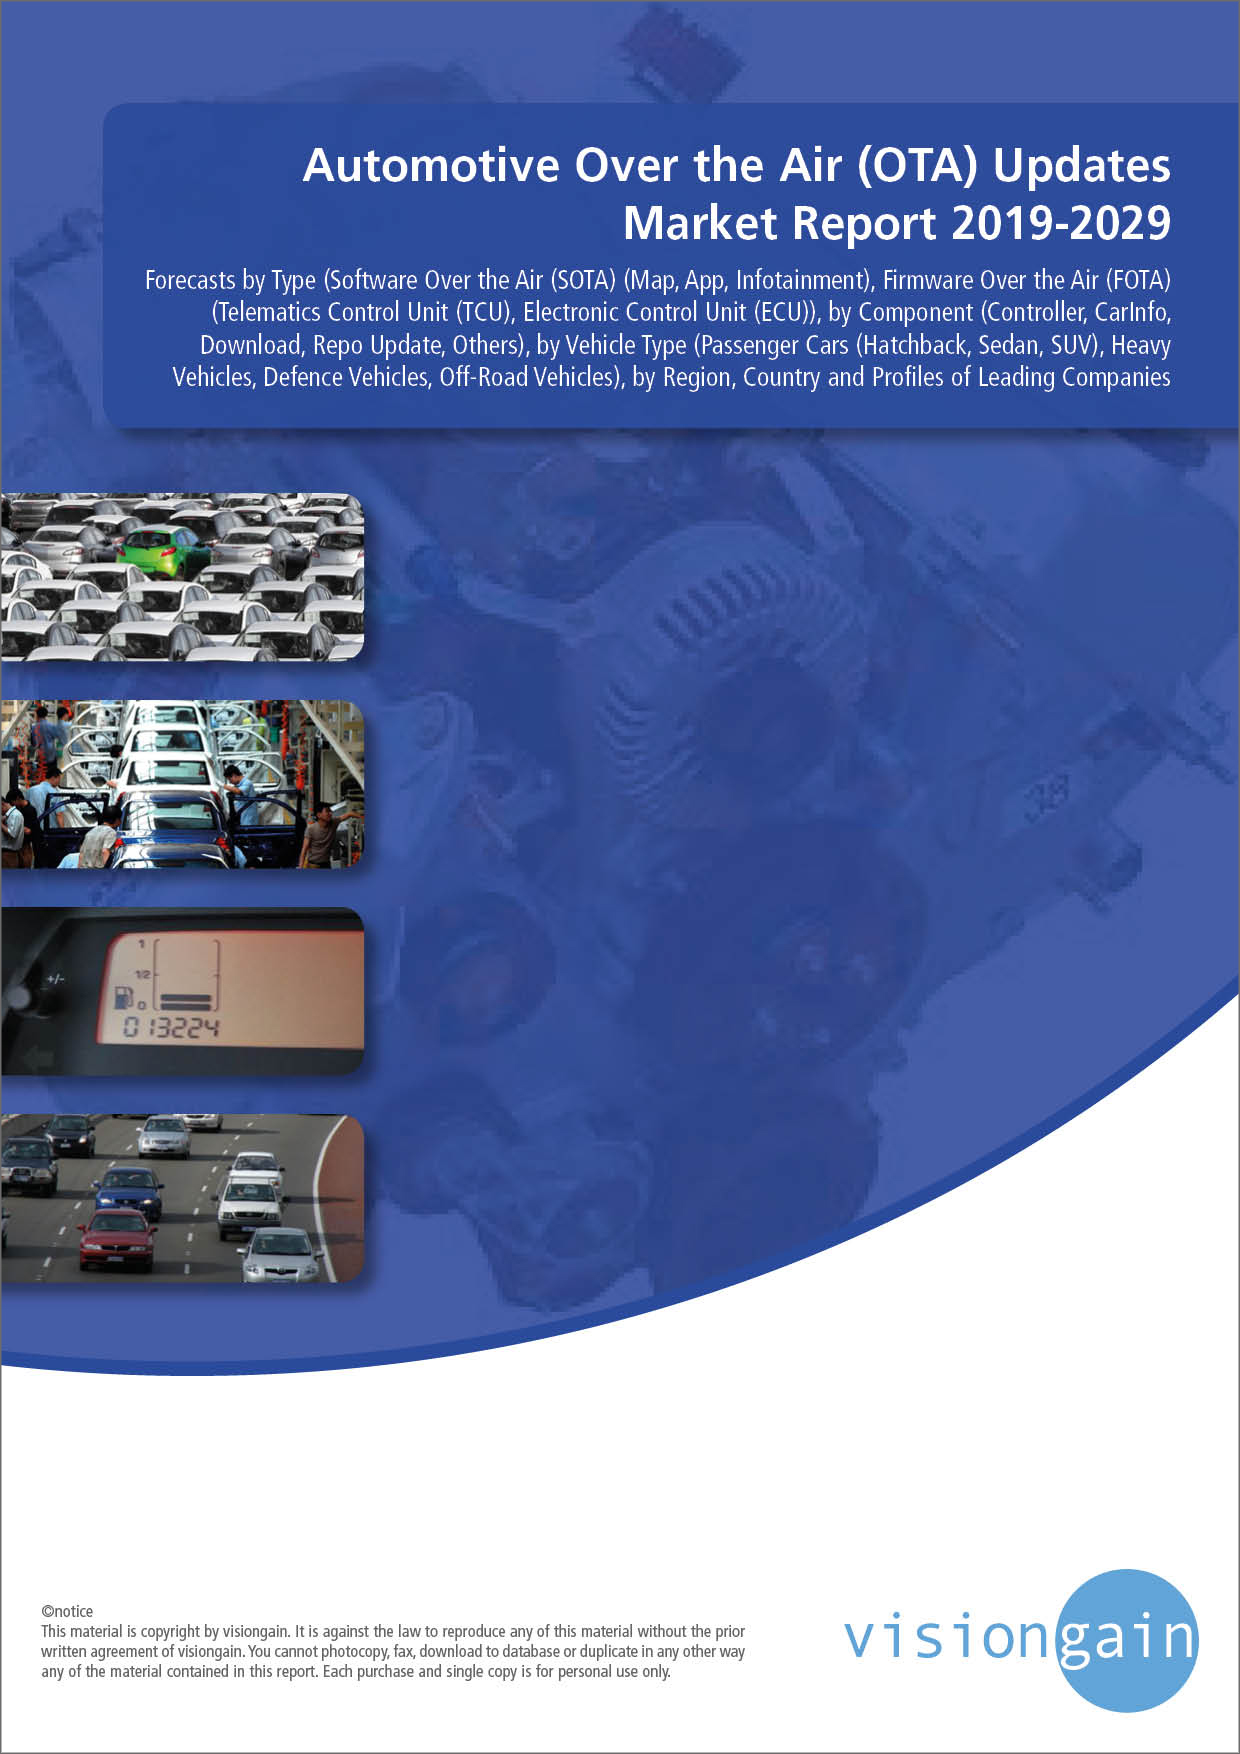 Automotive Over the Air (OTA) Updates Market Report 2019-2029